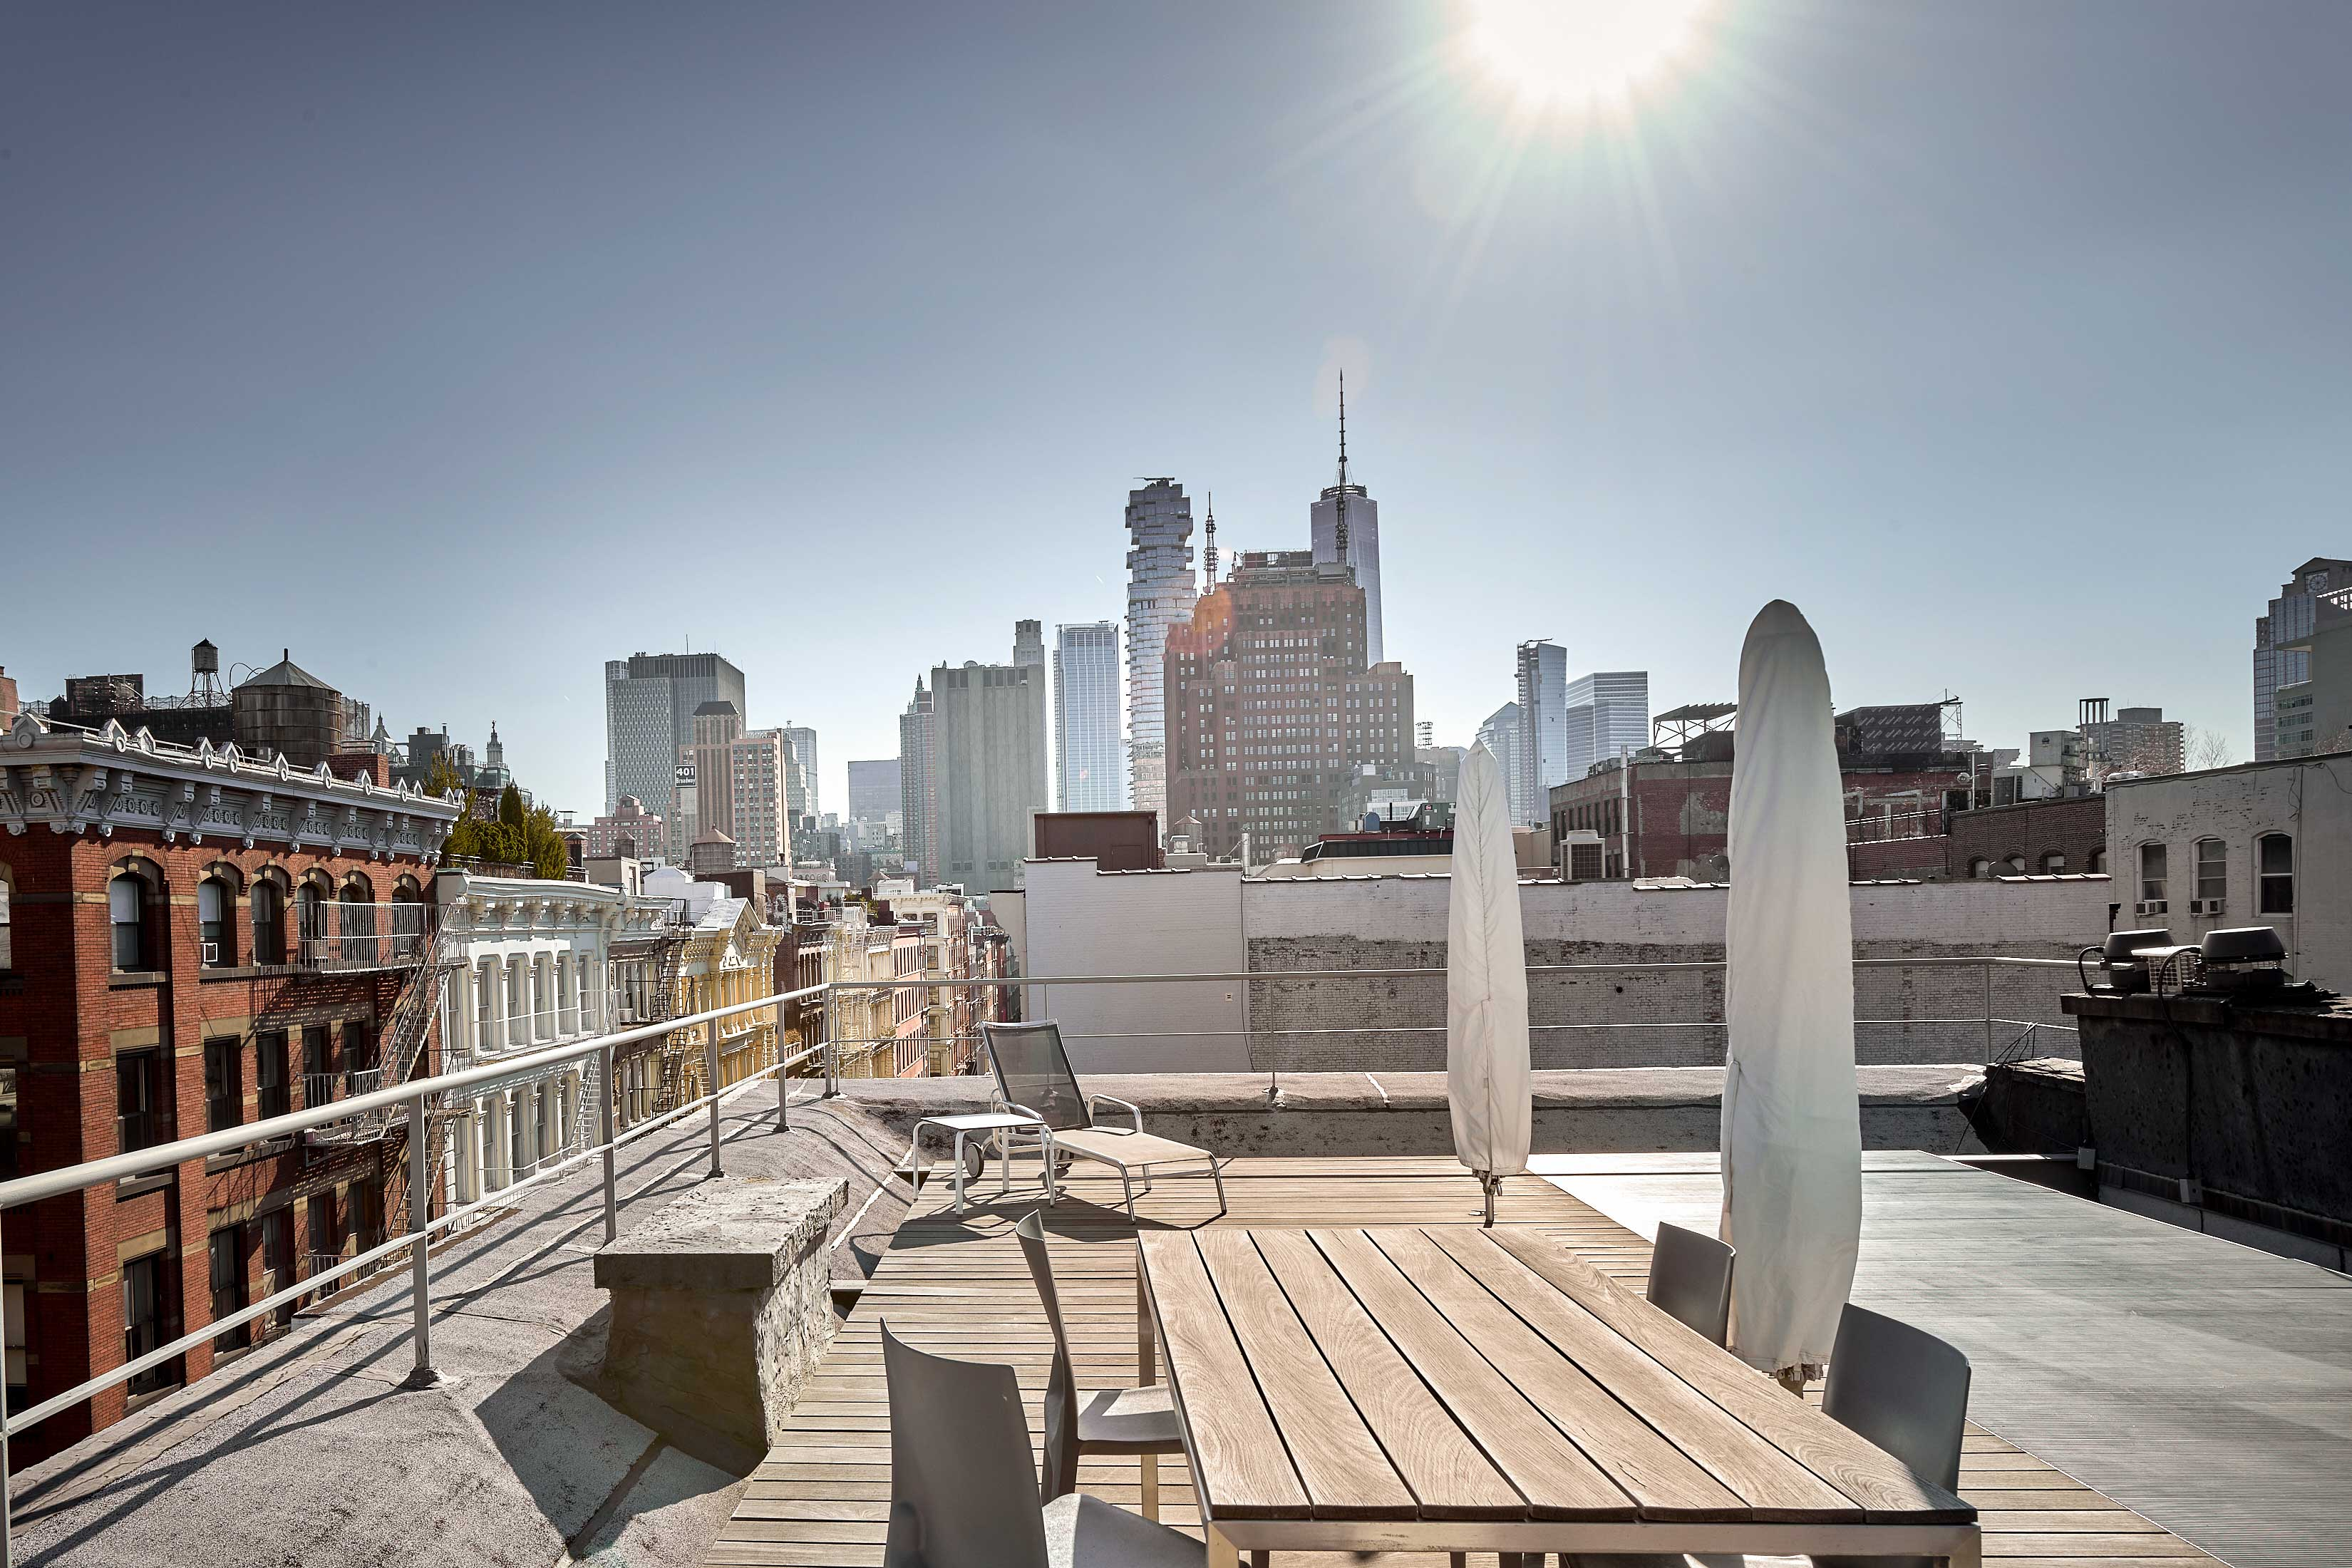 This penthouse loft in the heart of the SoHo-Cast Iron Historic District features a private roof deck with sweeping views of One World Trade Center.